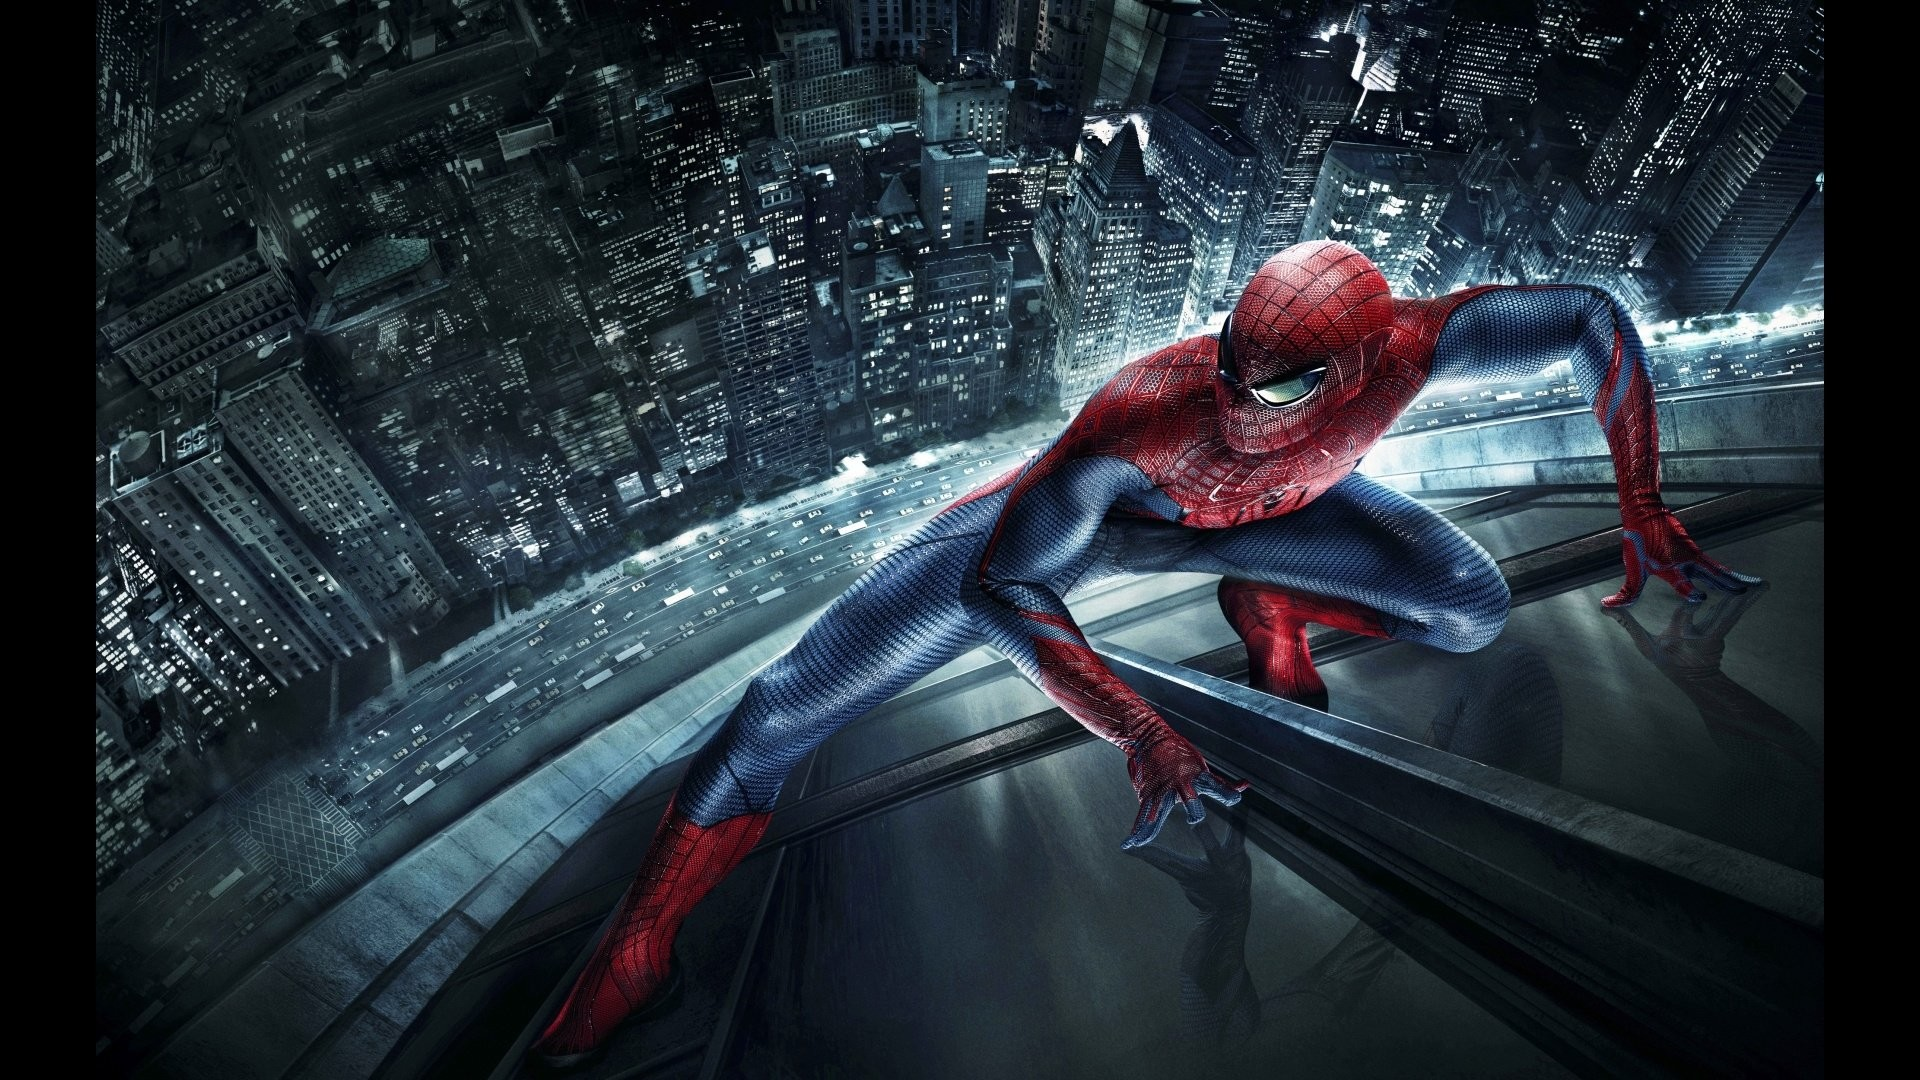 The 25+ best Spiderman hd ideas on Pinterest | Avengers hd, Andrew Garfield  sin camisa and Amazing spiderman